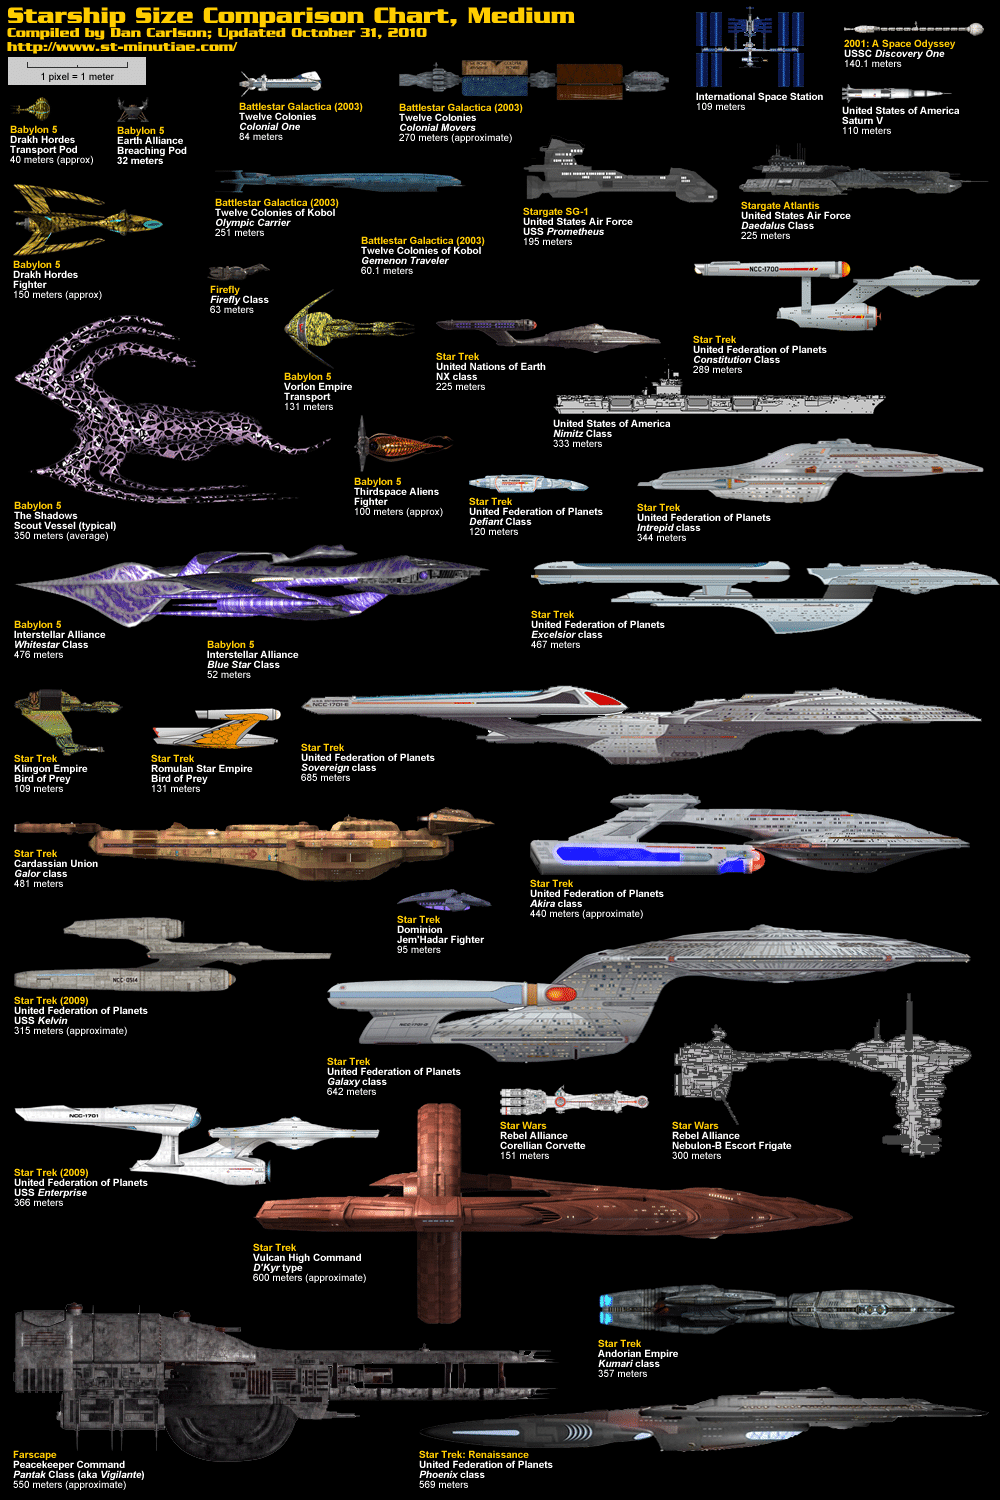 Science Fiction Spaceship Comparison Infographic